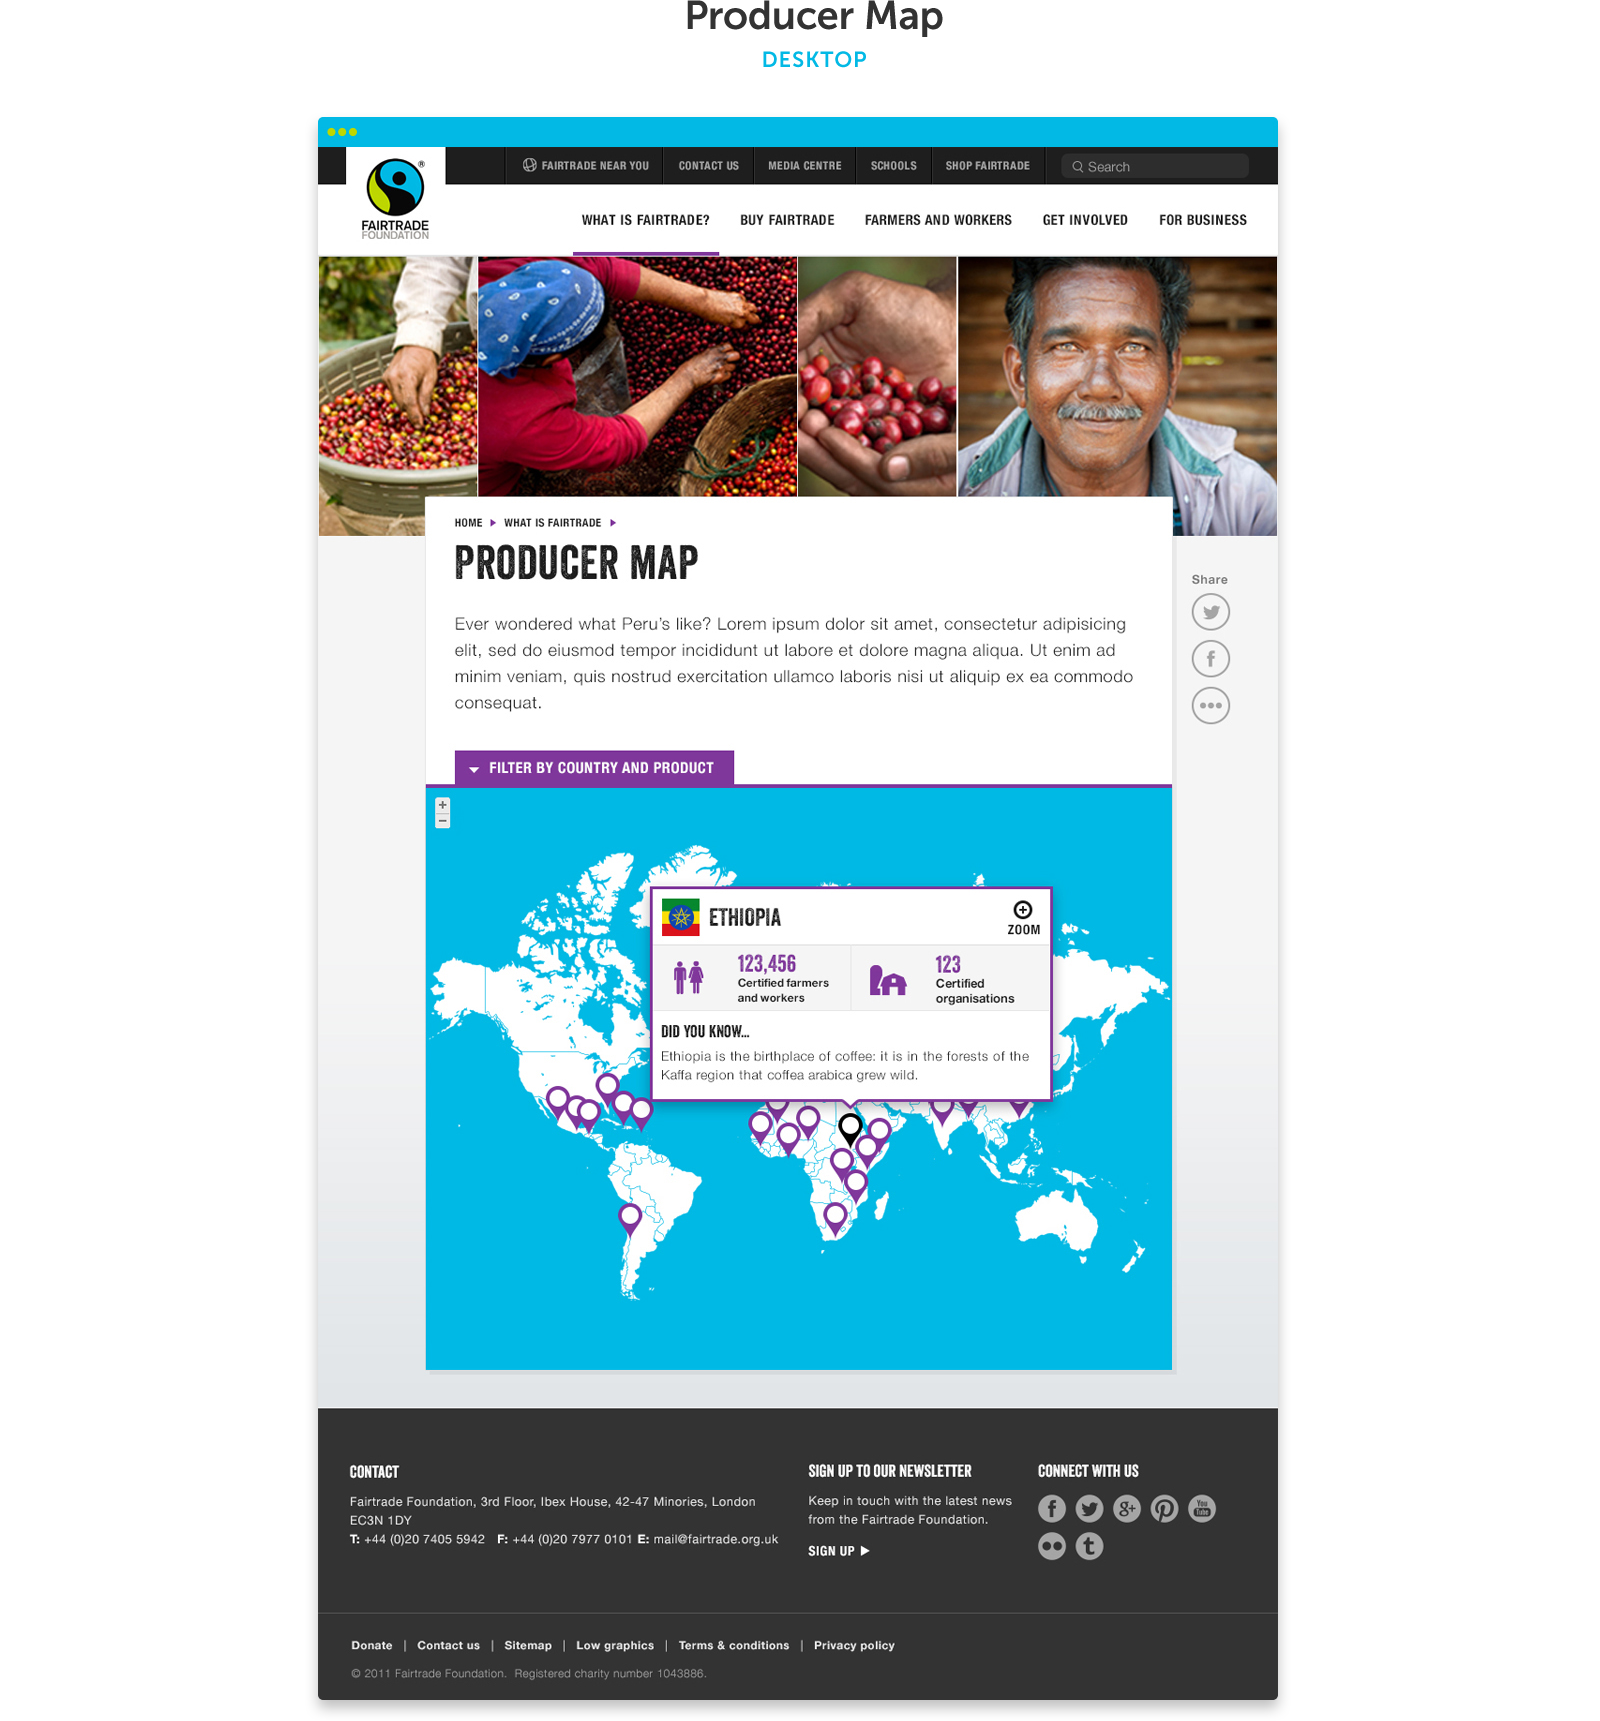 fairtrade-4a